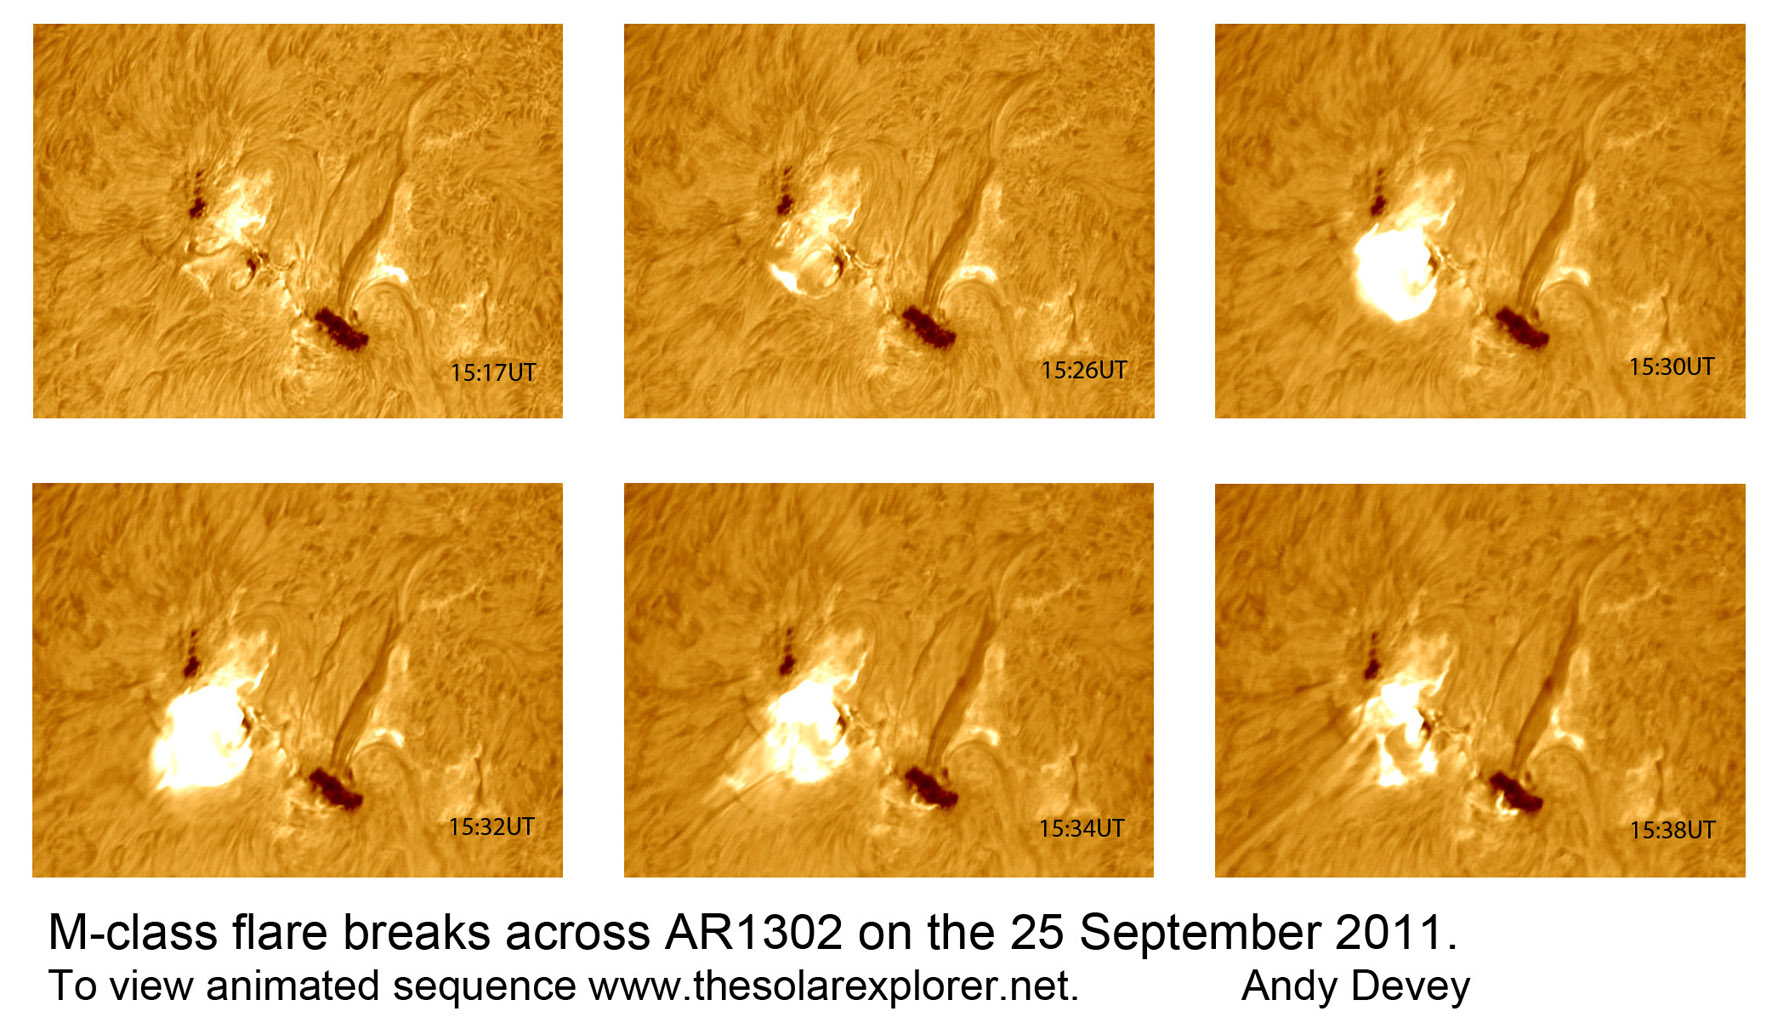 images/stories/m-class flare 25 september 2011 small.jpg